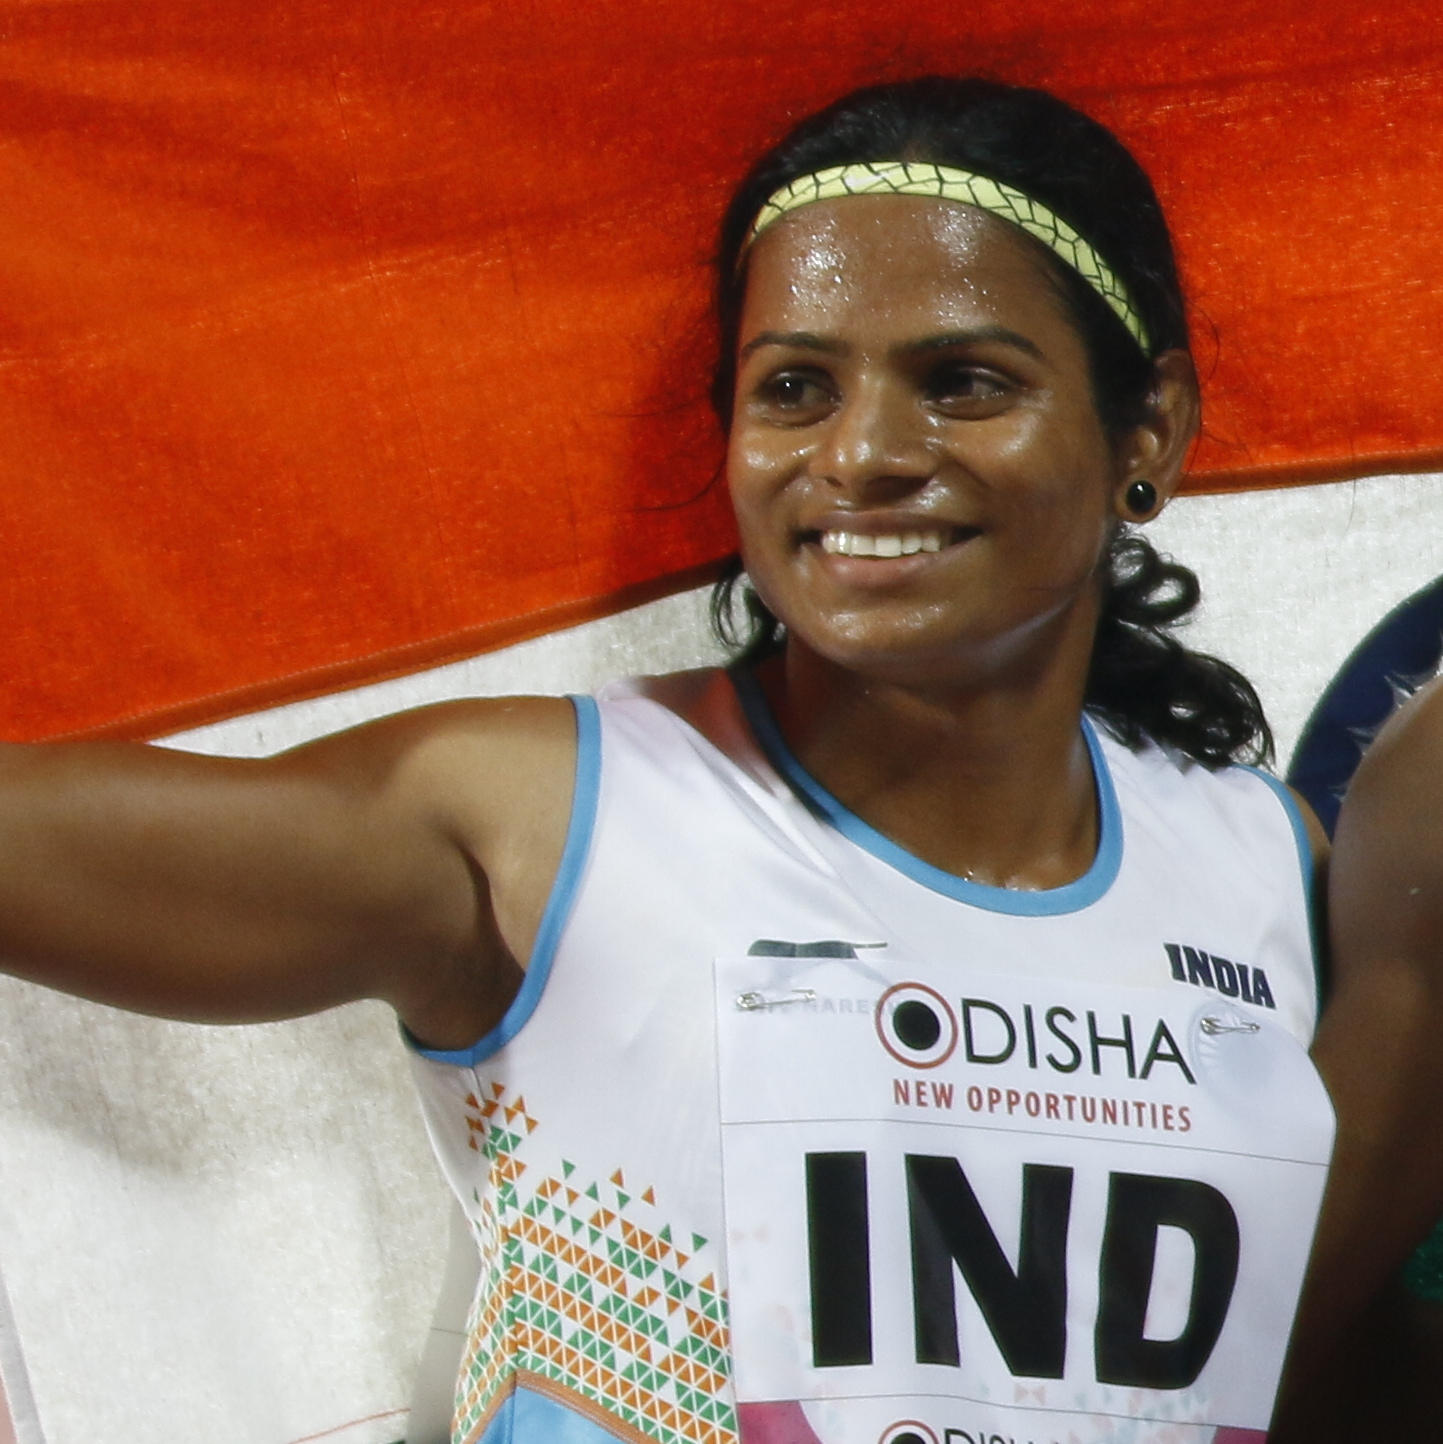 Athletics-India sprinter Chand signs two-year deal with Puma